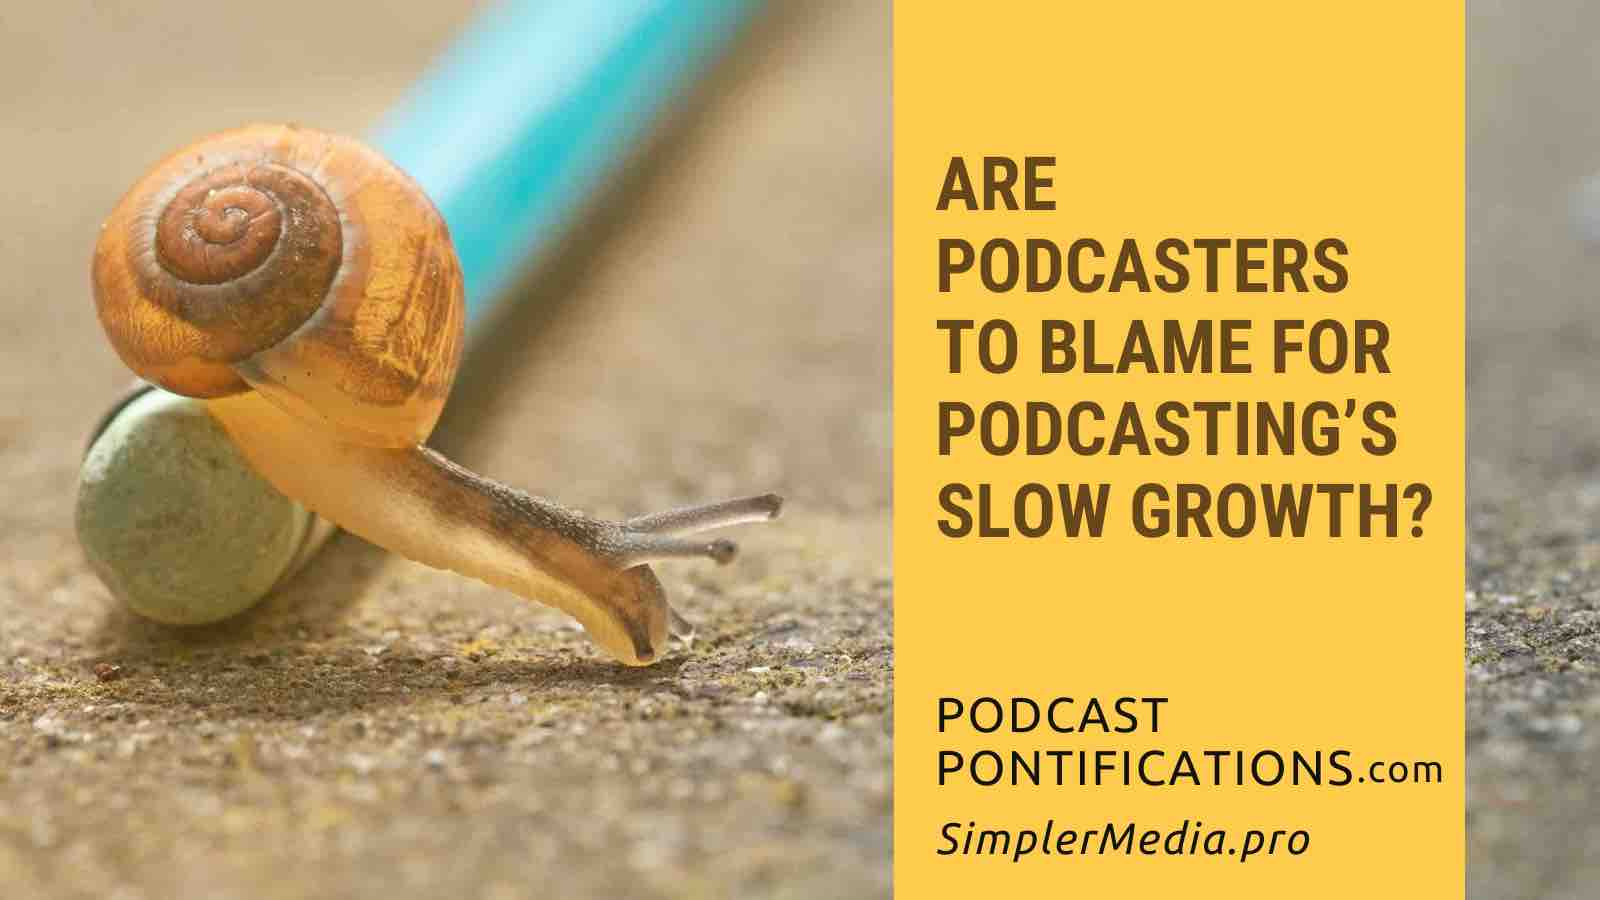 Are Podcasters To Blame For Podcasting's Slow Growth?